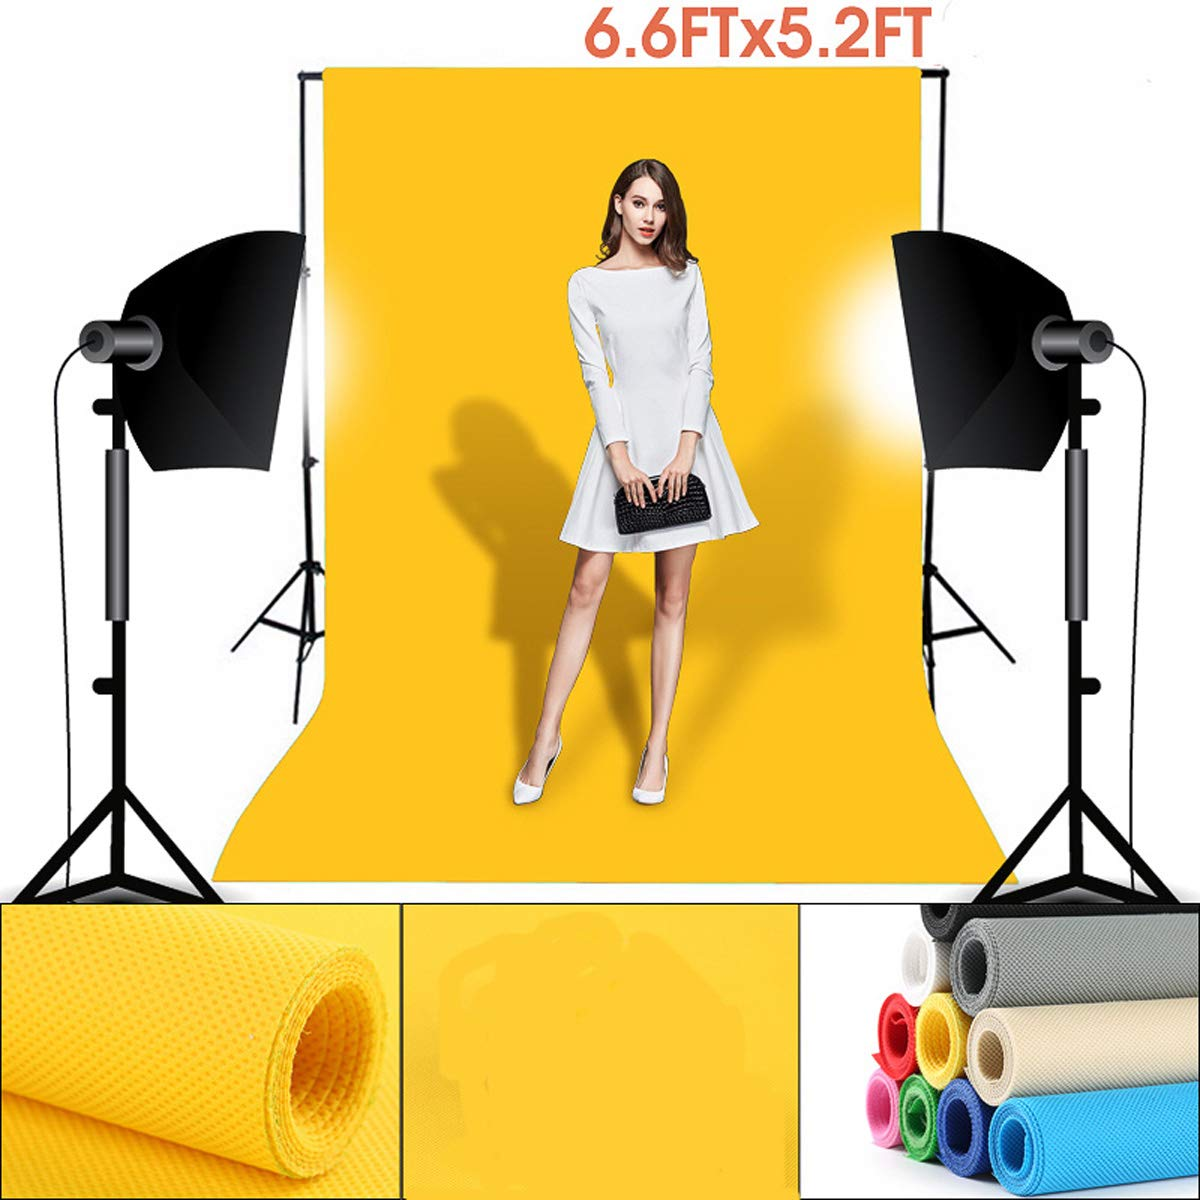 6.6ft X 5.2ft Photography Photo Background Cloth Solid Color Backgrounds for Portrait Product Photography Video Shooting White